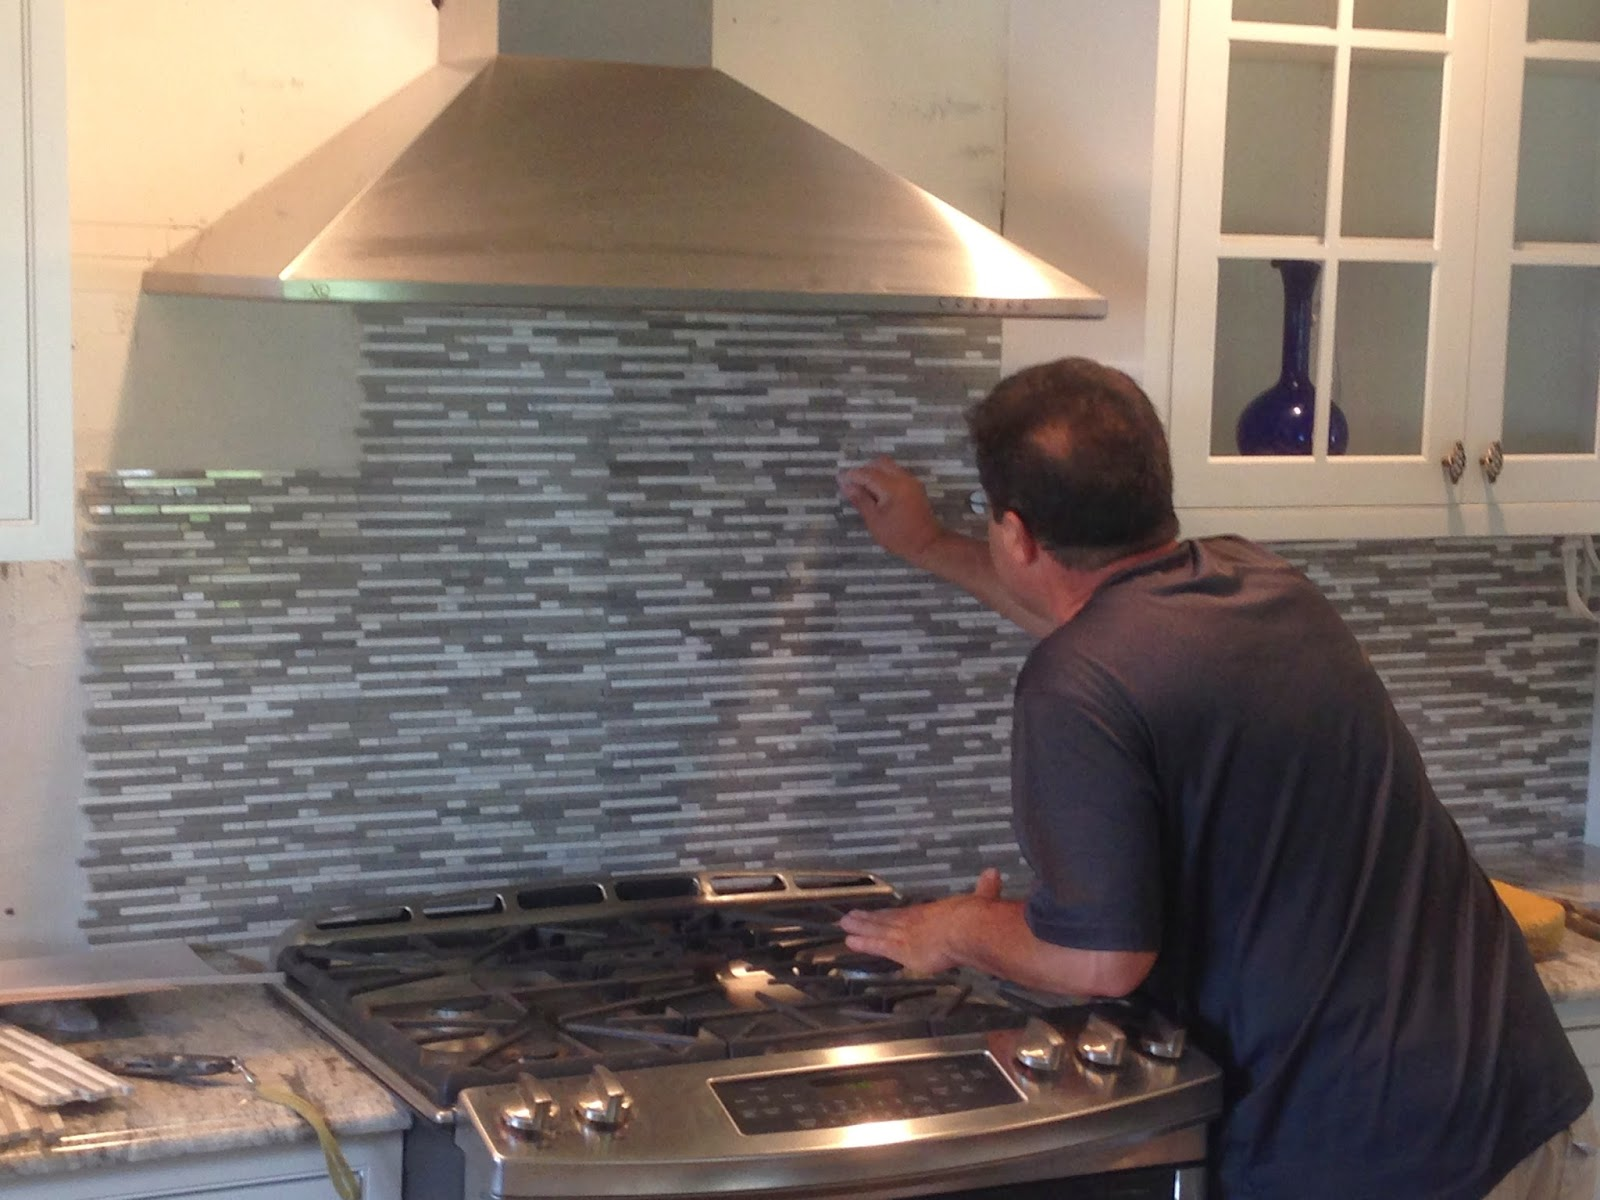 backsplash is Shore Stone from Mediterranean Tile in Fairfield, NJ